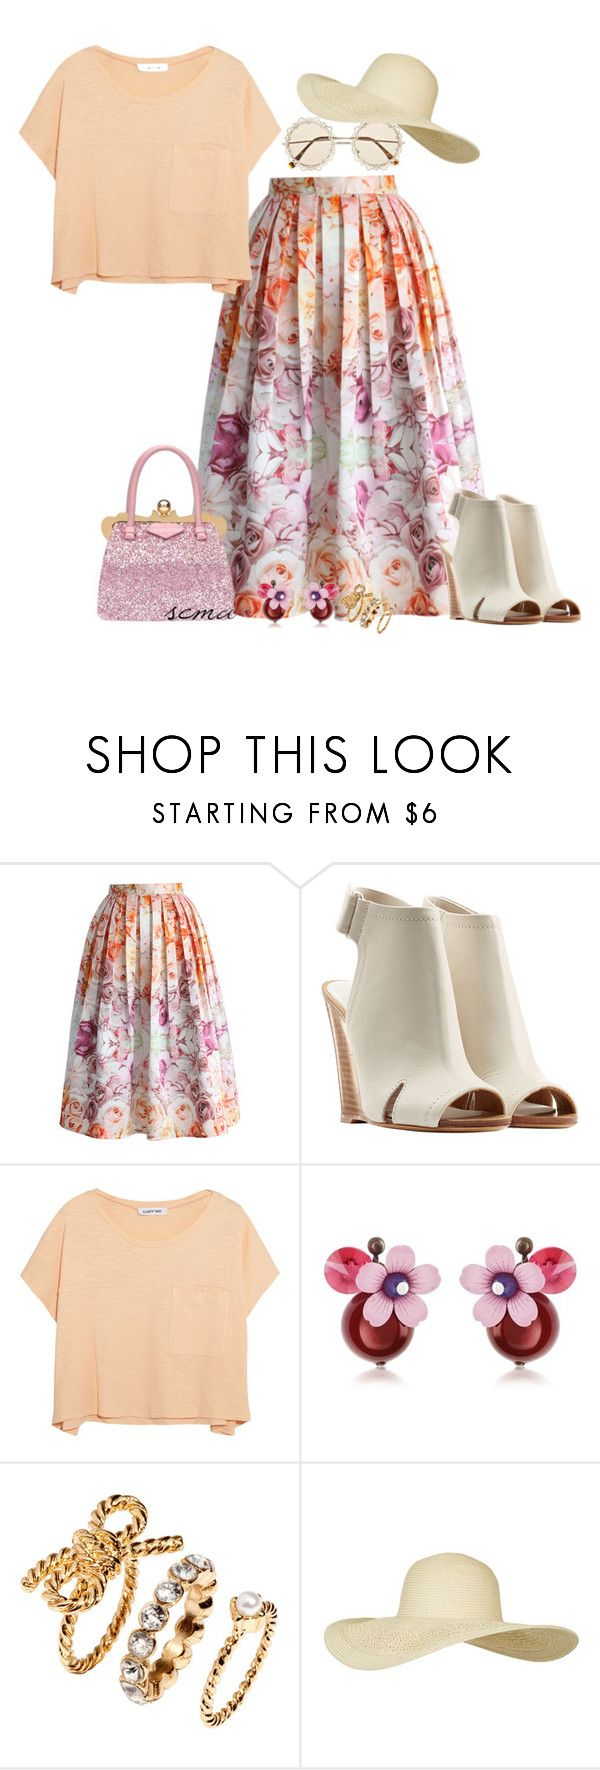 """3s"" by semanur-coskun ❤ liked on Polyvore featuring moda, Chicwish, rag & bone, Elizabeth and James, Swarovski Crystallized, Miu Miu, H&M y Topshop"